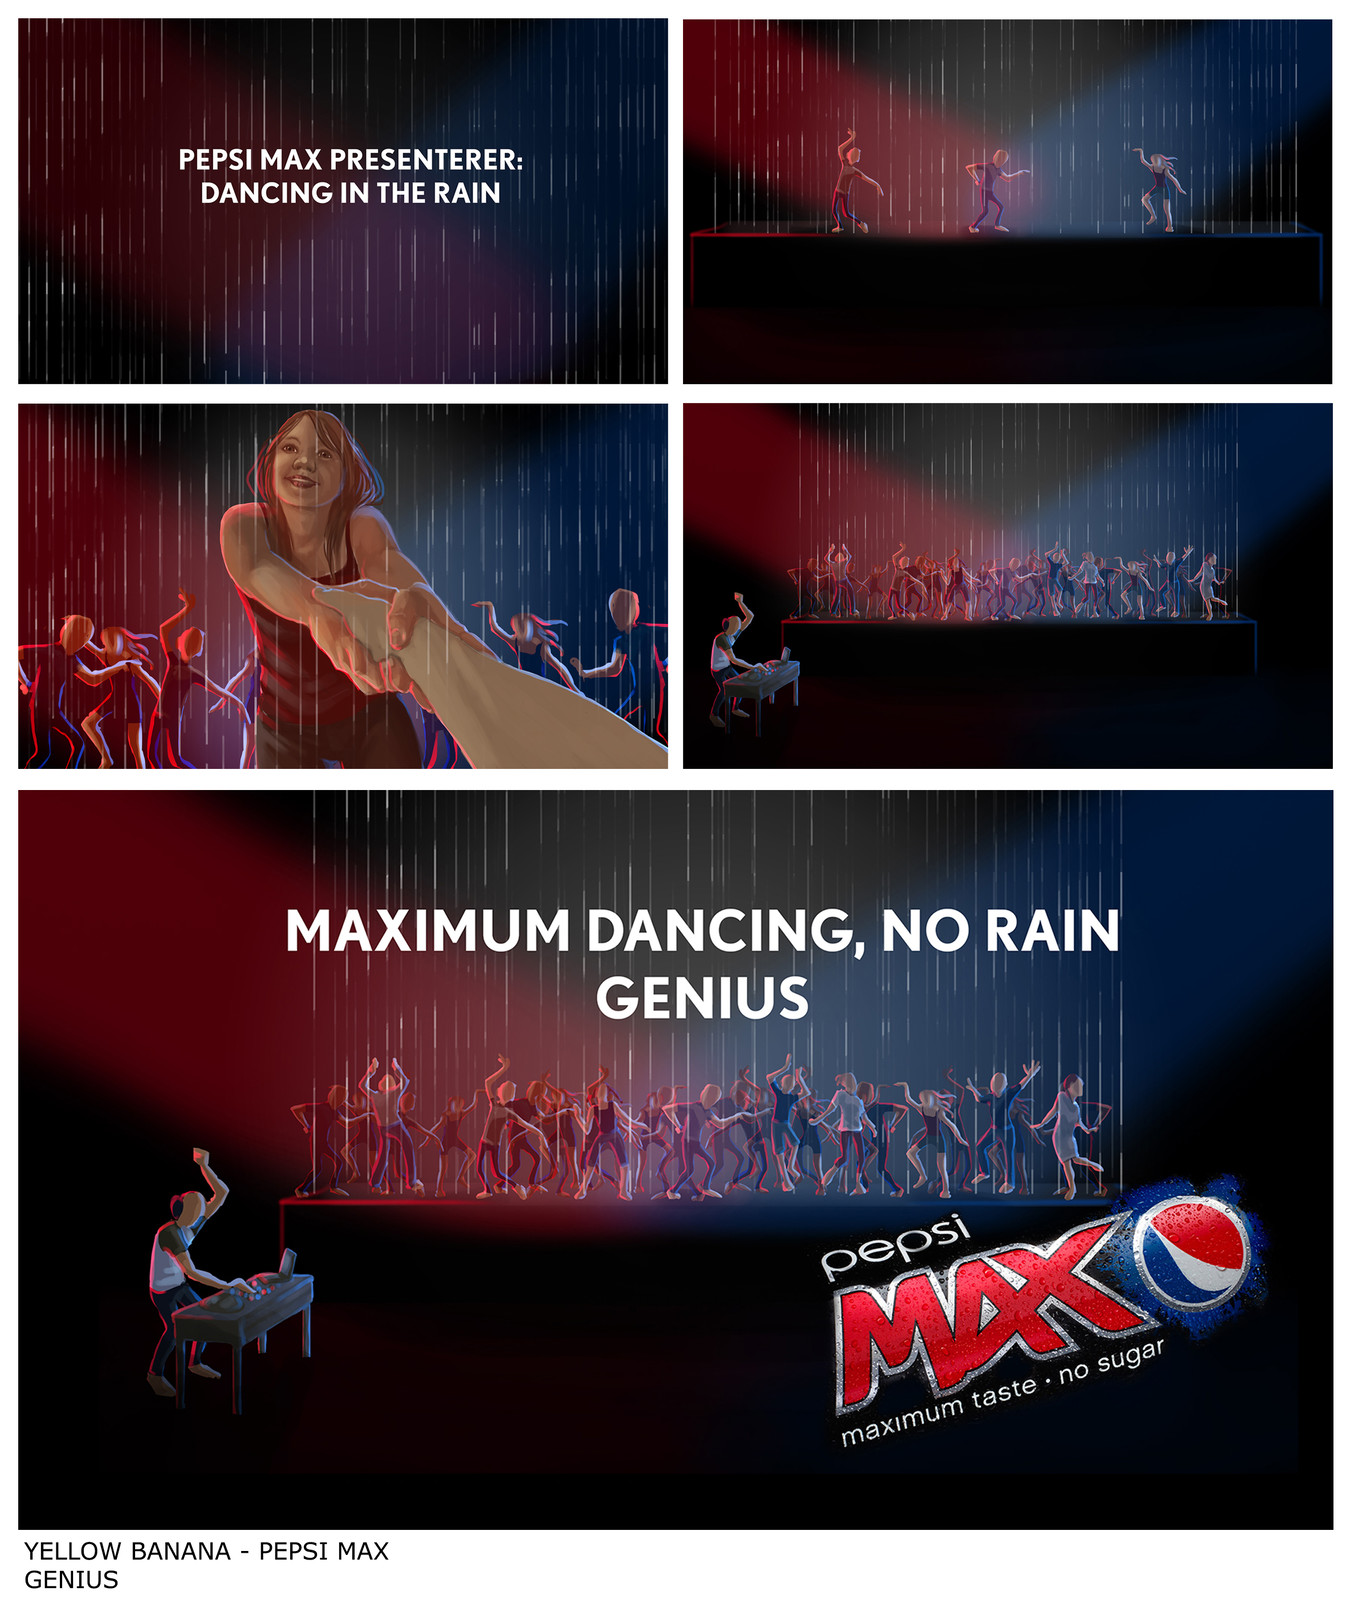 Pepsi Max - Dancing in the Rain